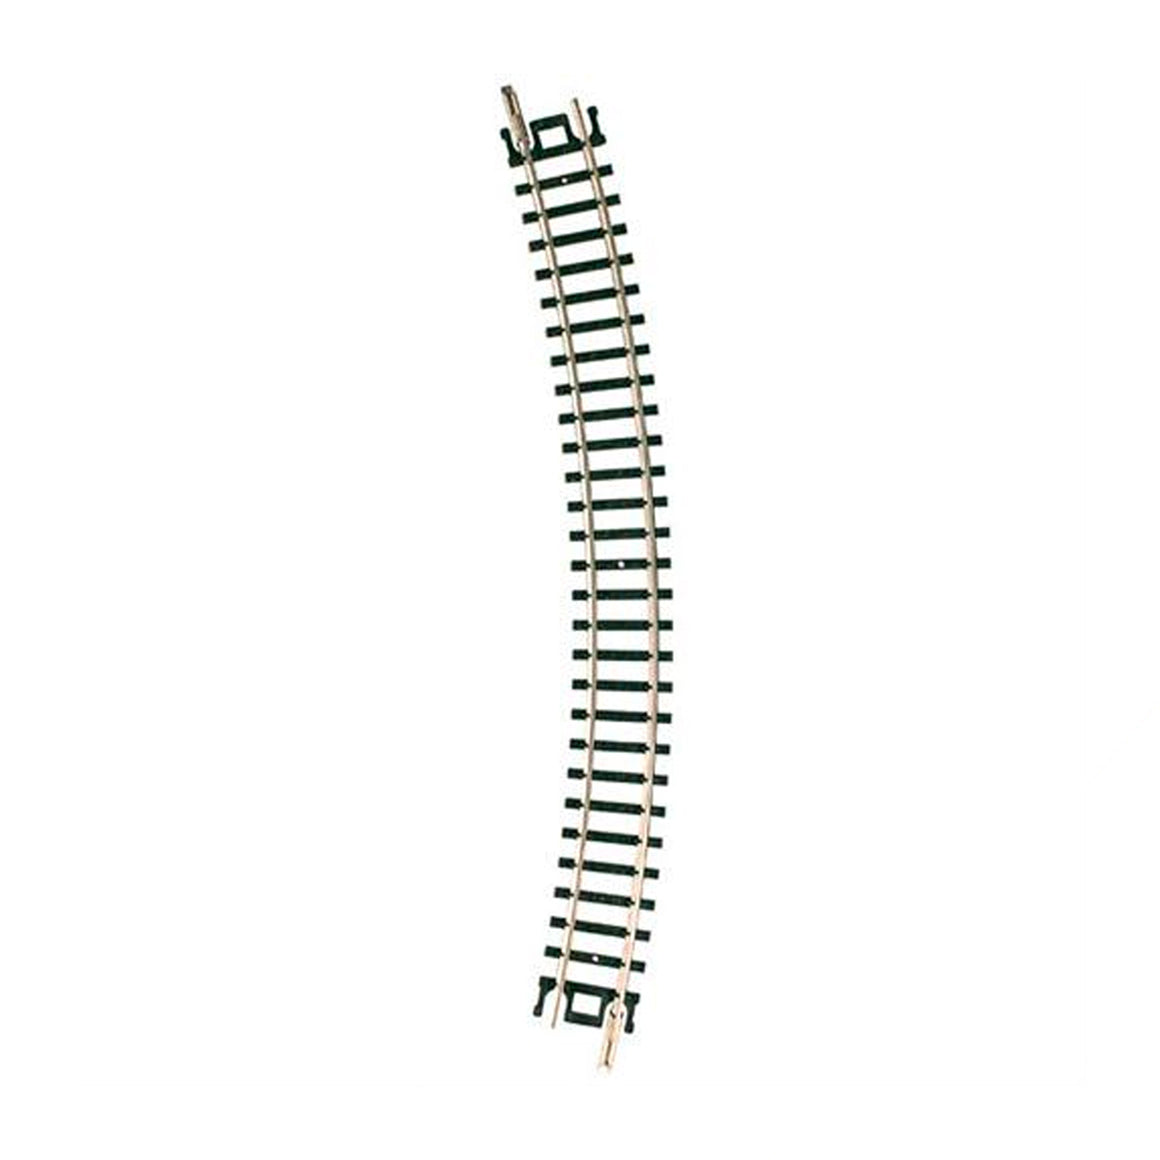 N Scale: Code 80 Snap Track - Curves